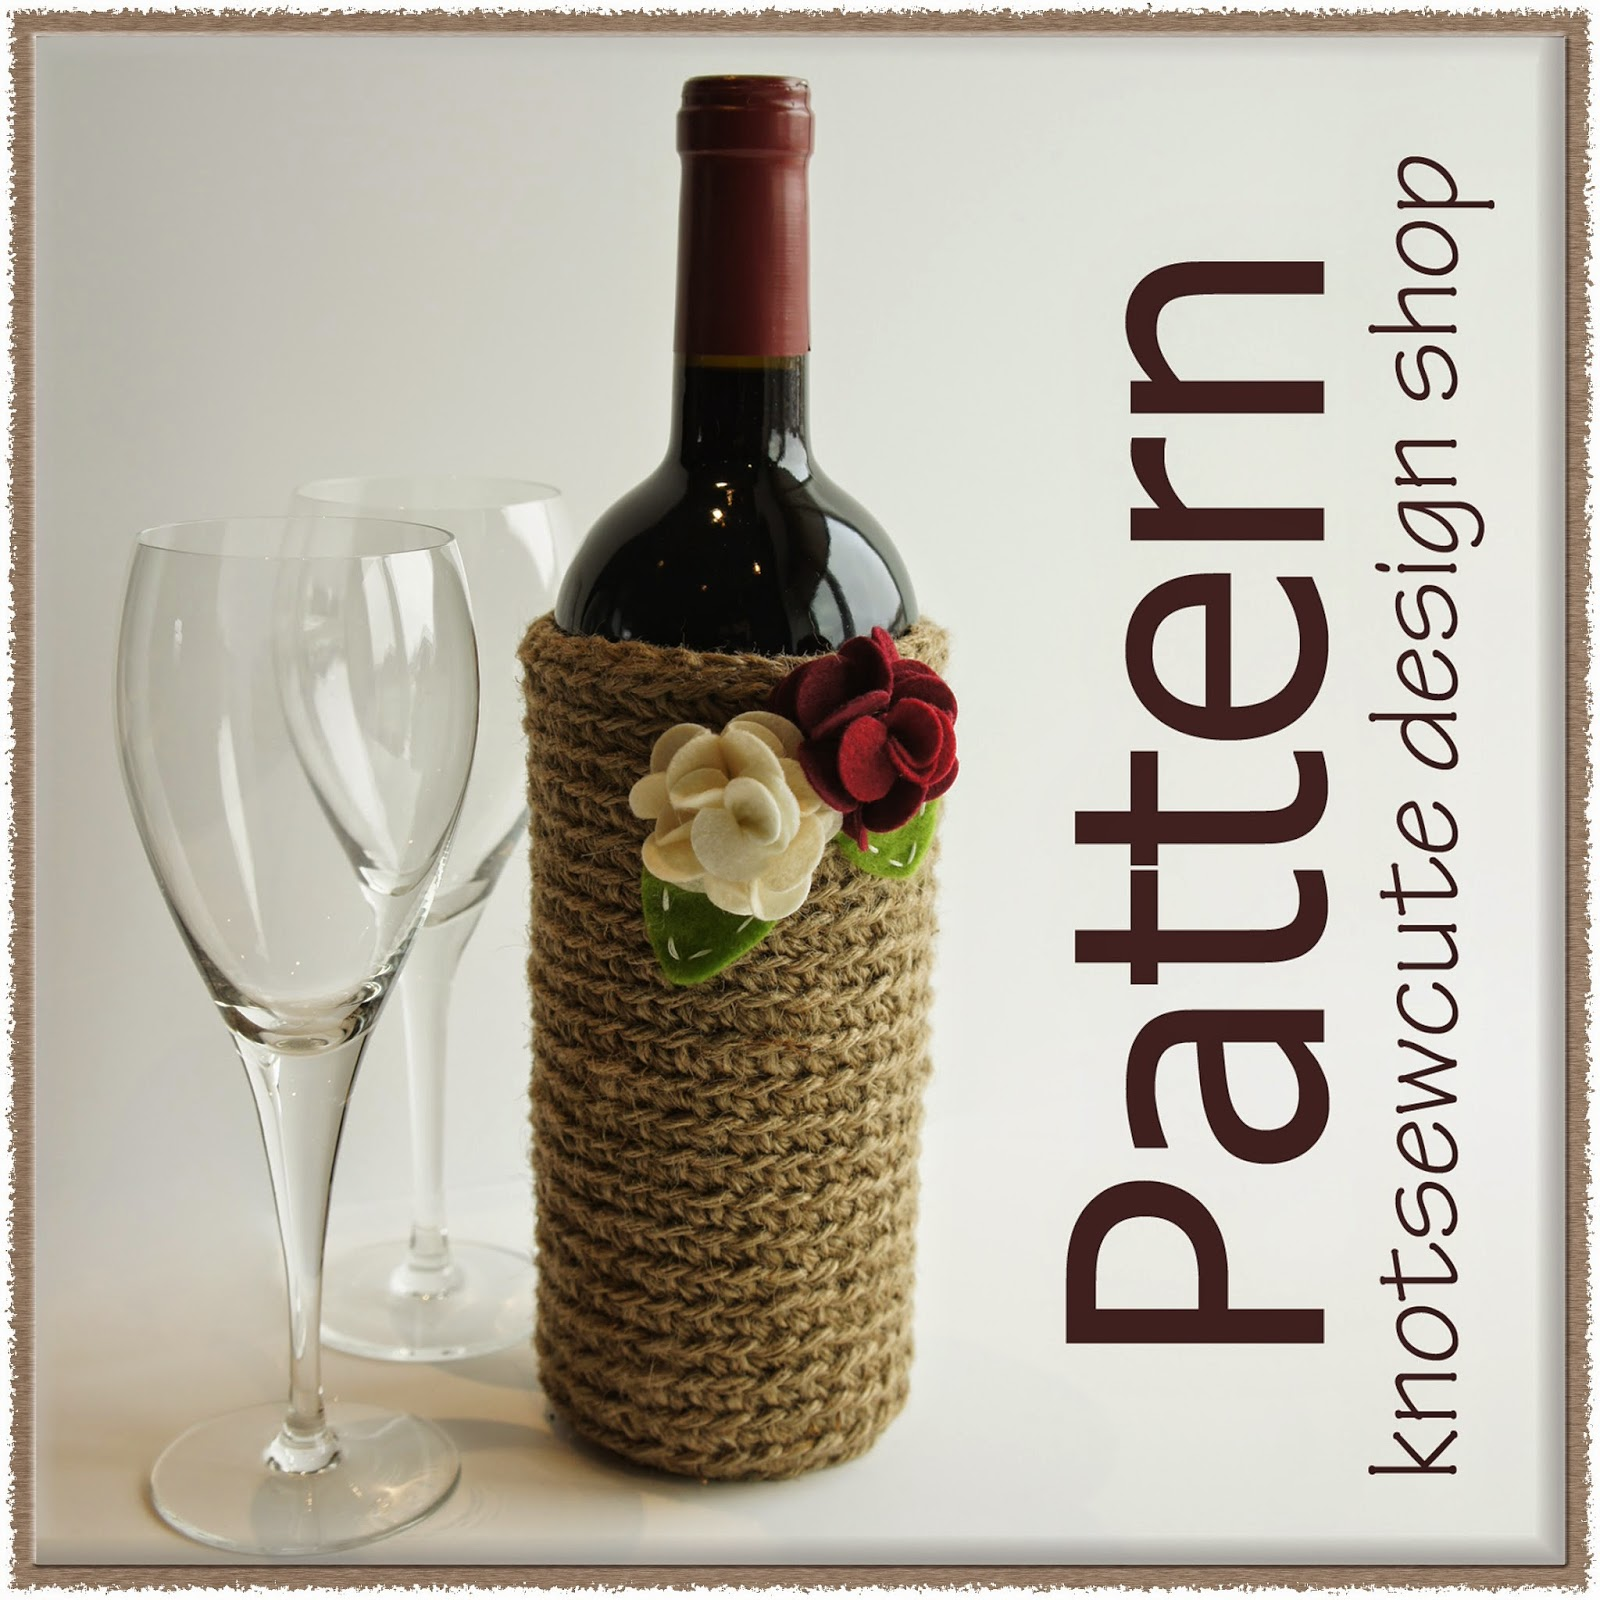 http://www.ravelry.com/patterns/library/jute-wine-bottle-sleeve